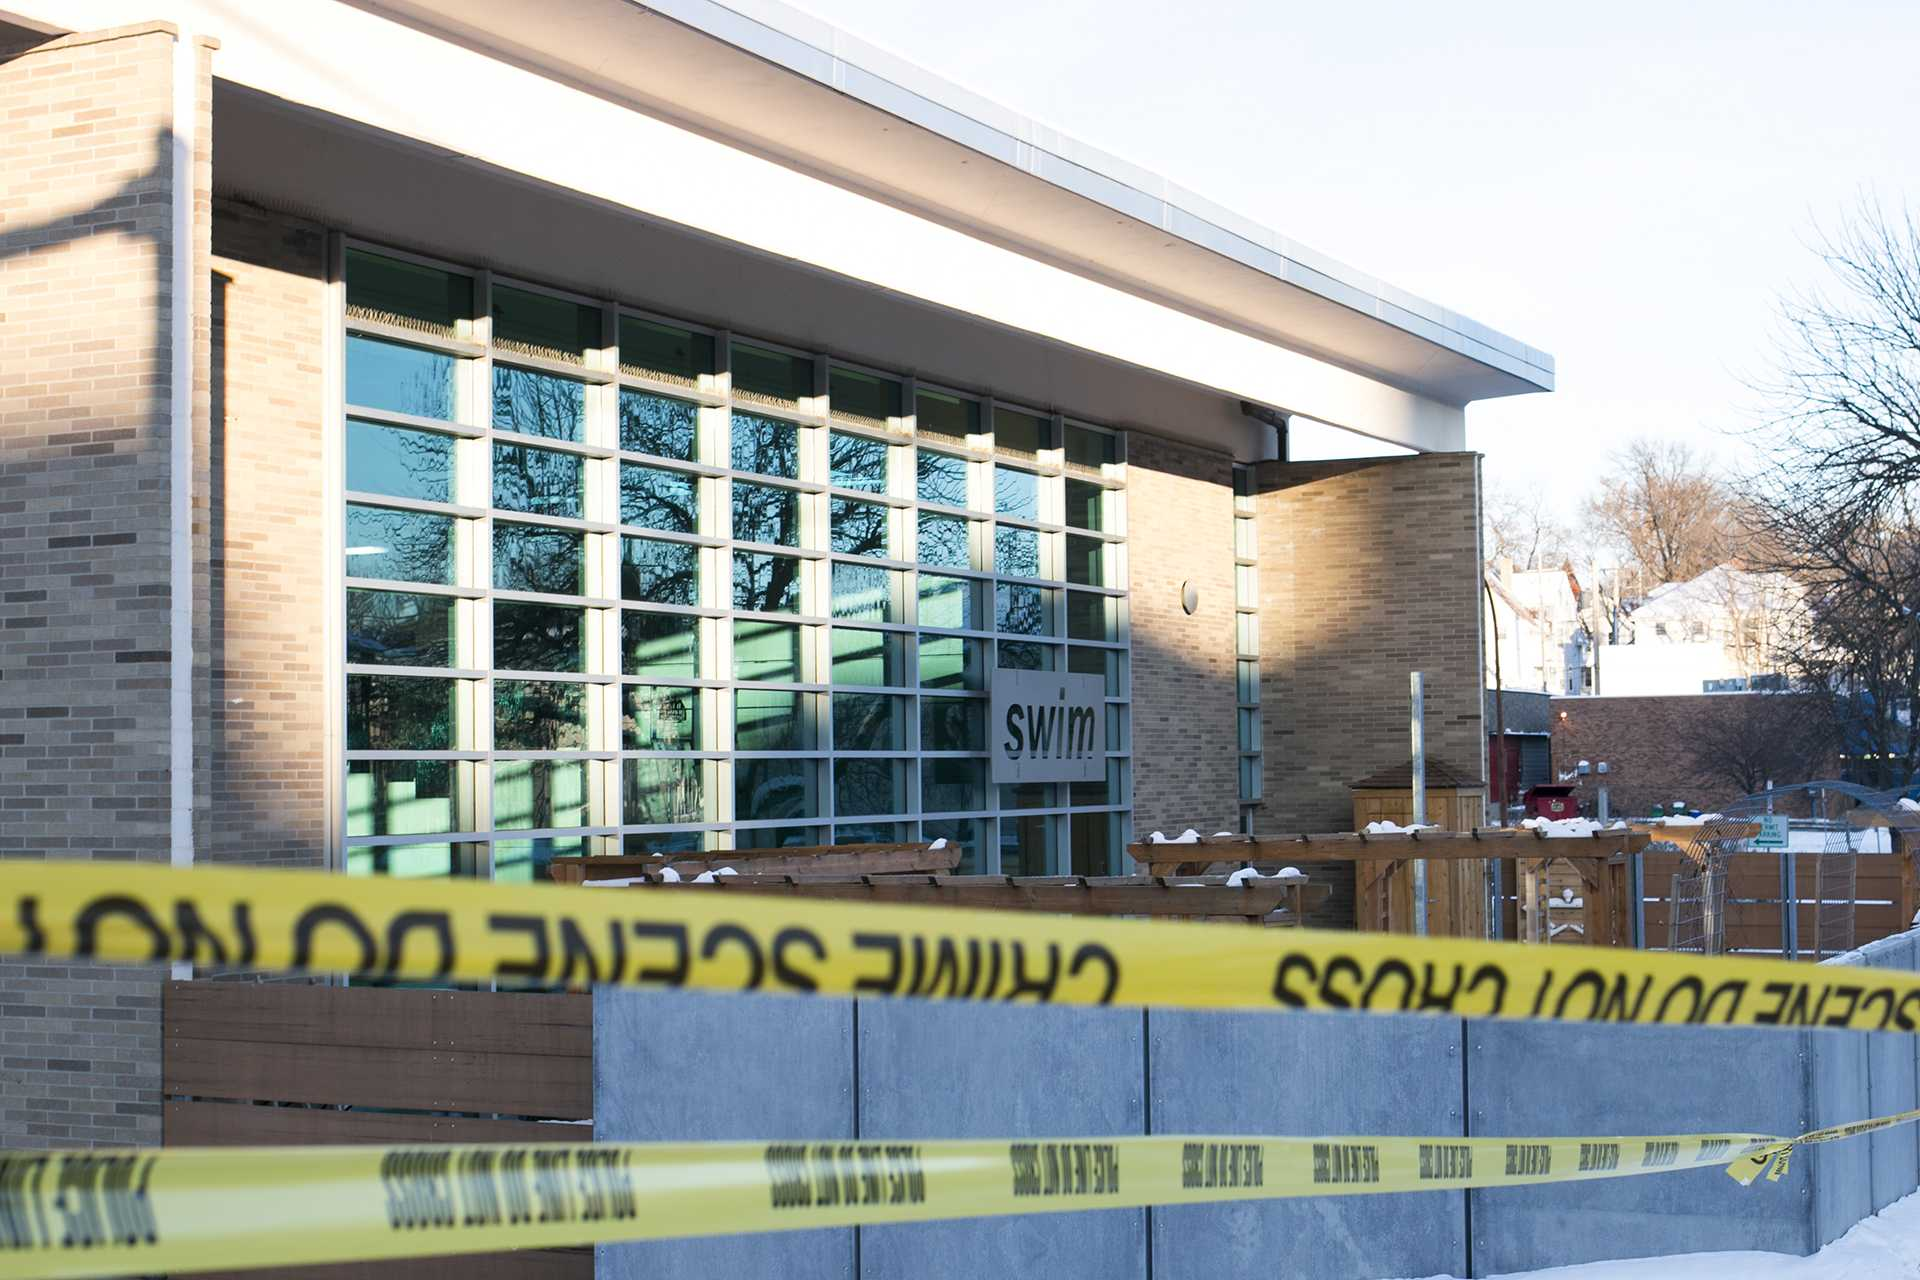 Cause of death determined for man found dead outside city Rec Center